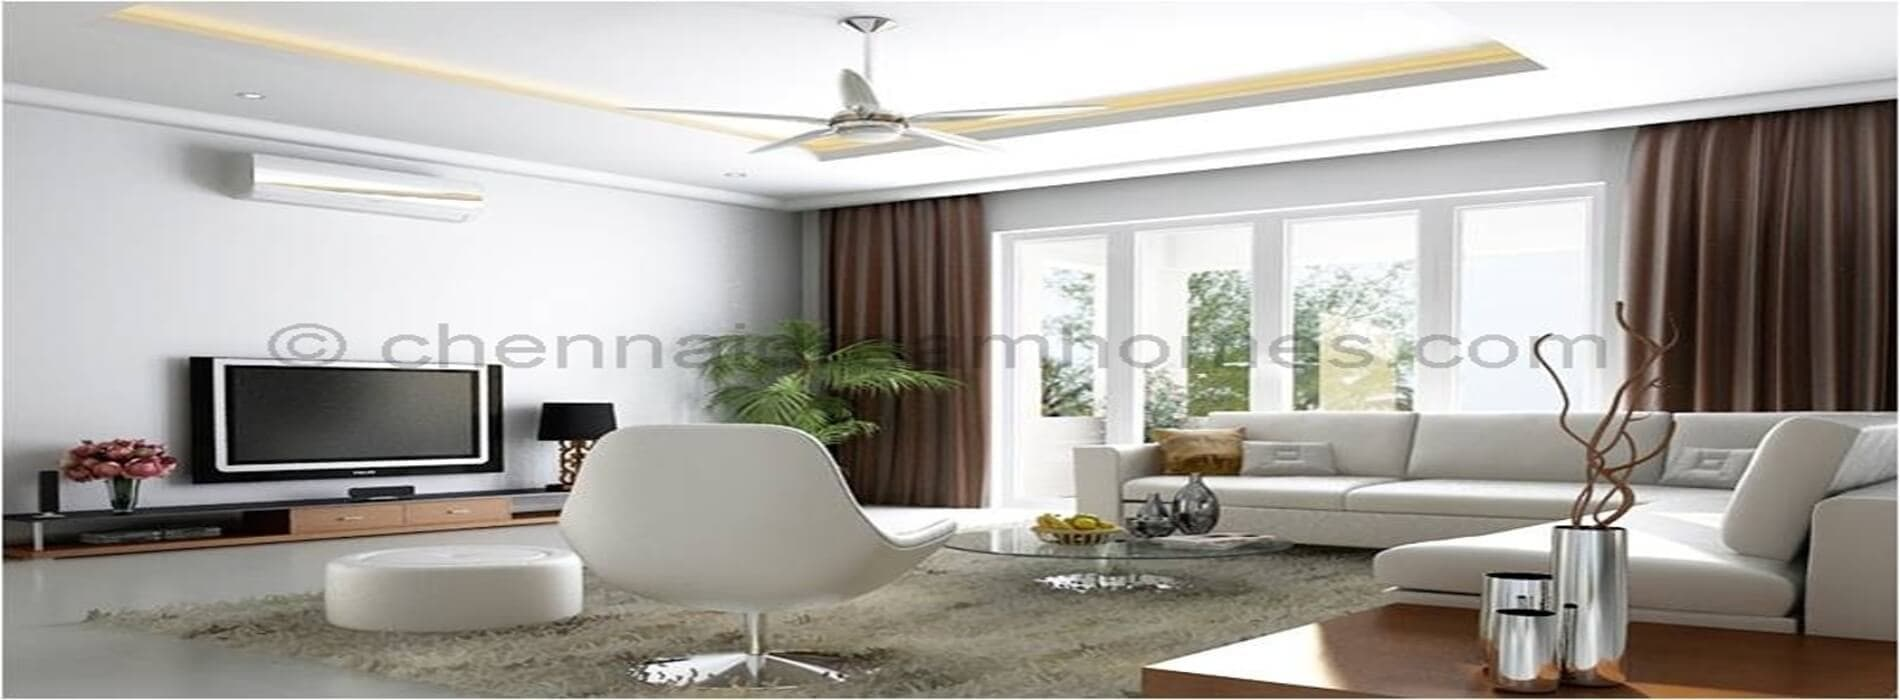 3,4 BHK Luxury MSB Apartments for sale in OMR, before Toll